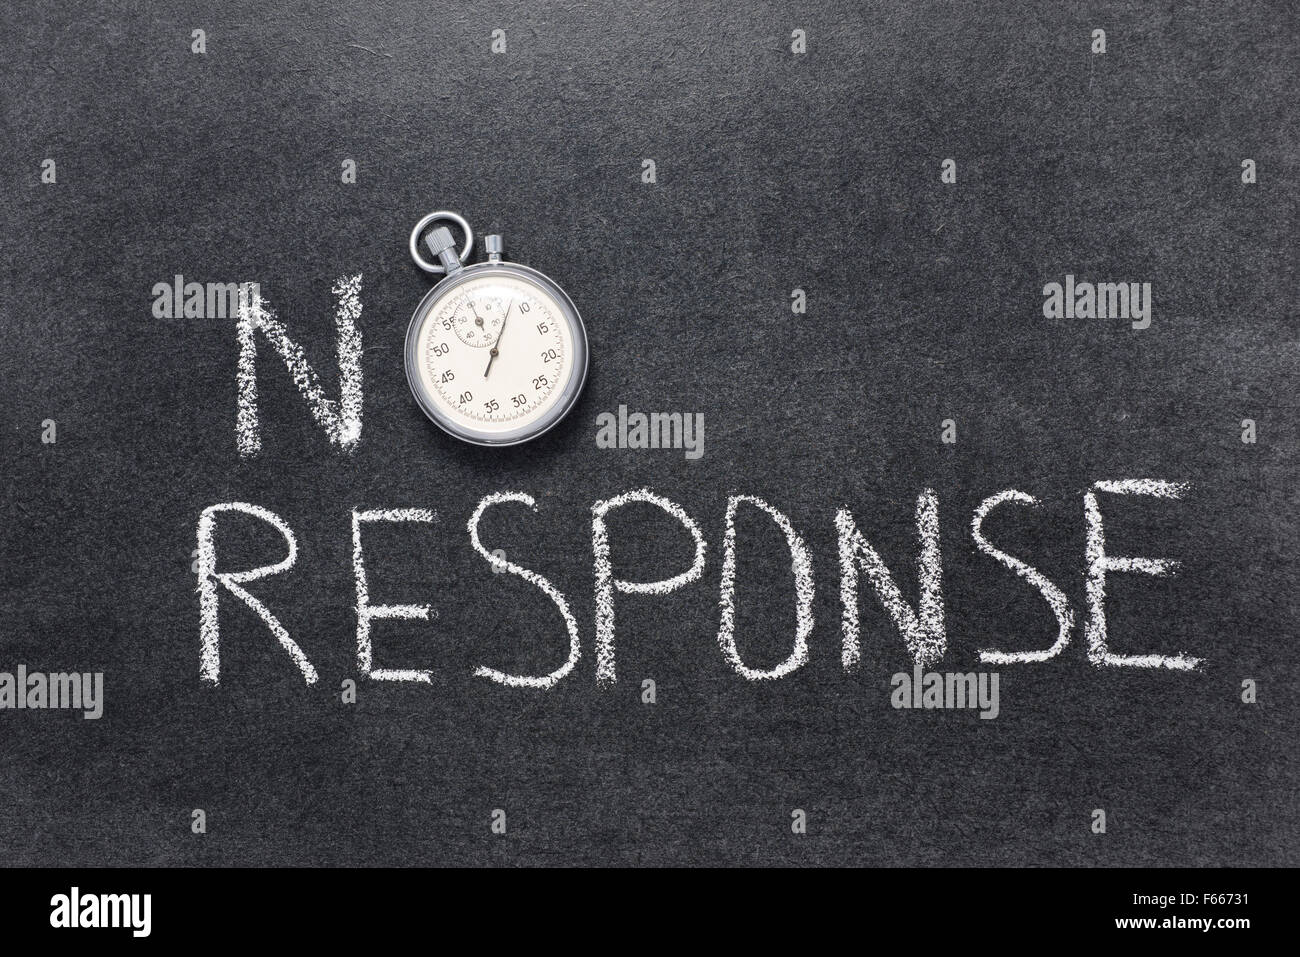 no response phrase handwritten on chalkboard with vintage precise stopwatch used instead of O - Stock Image